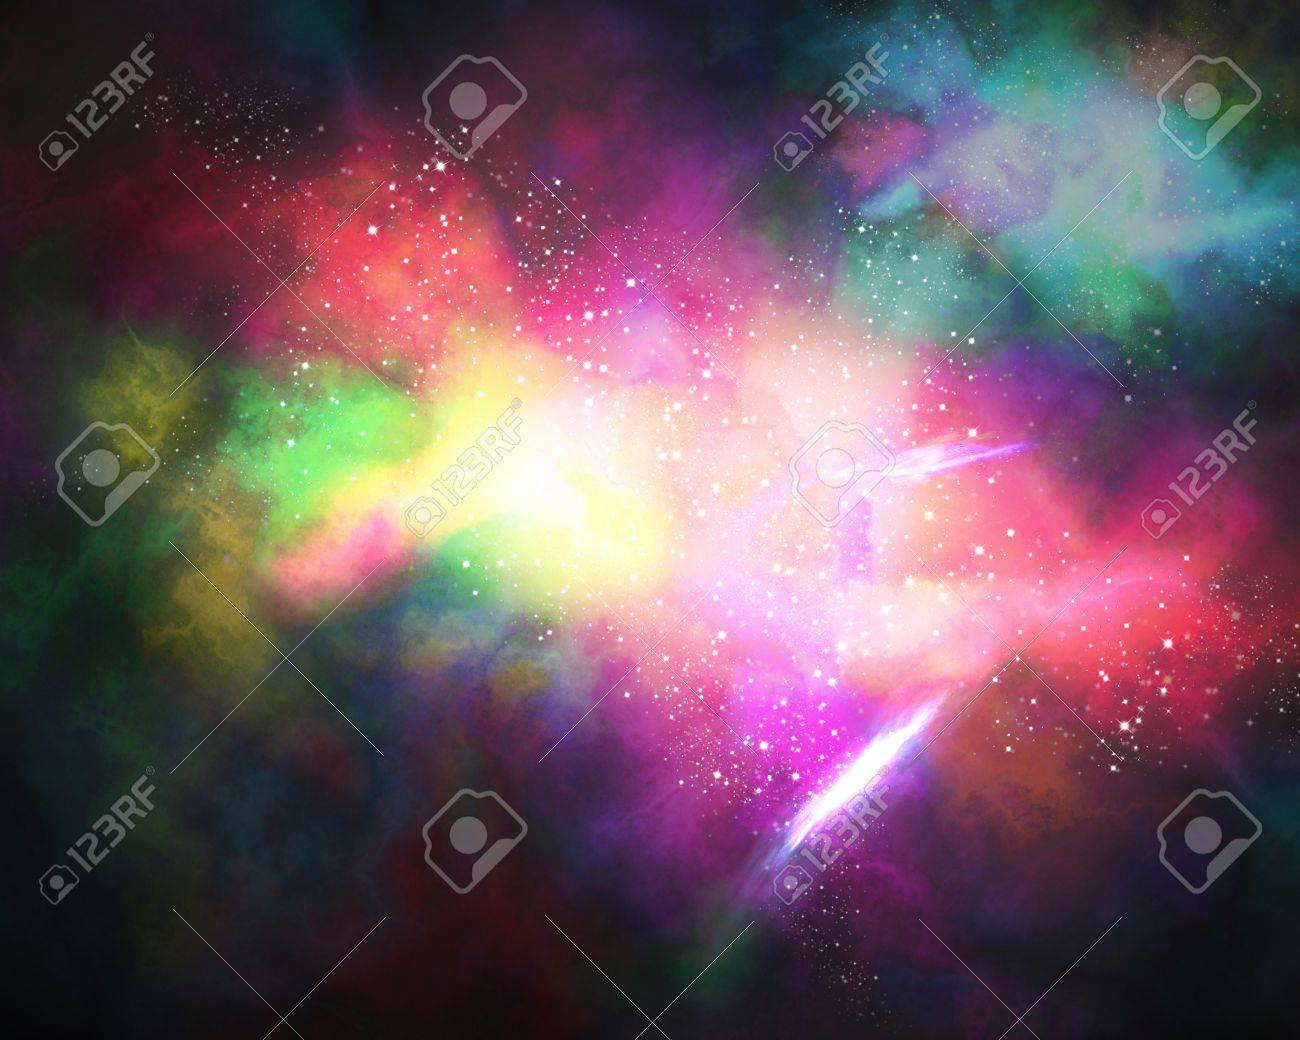 galaxy Orion in the universe Stock Photo - 12915434